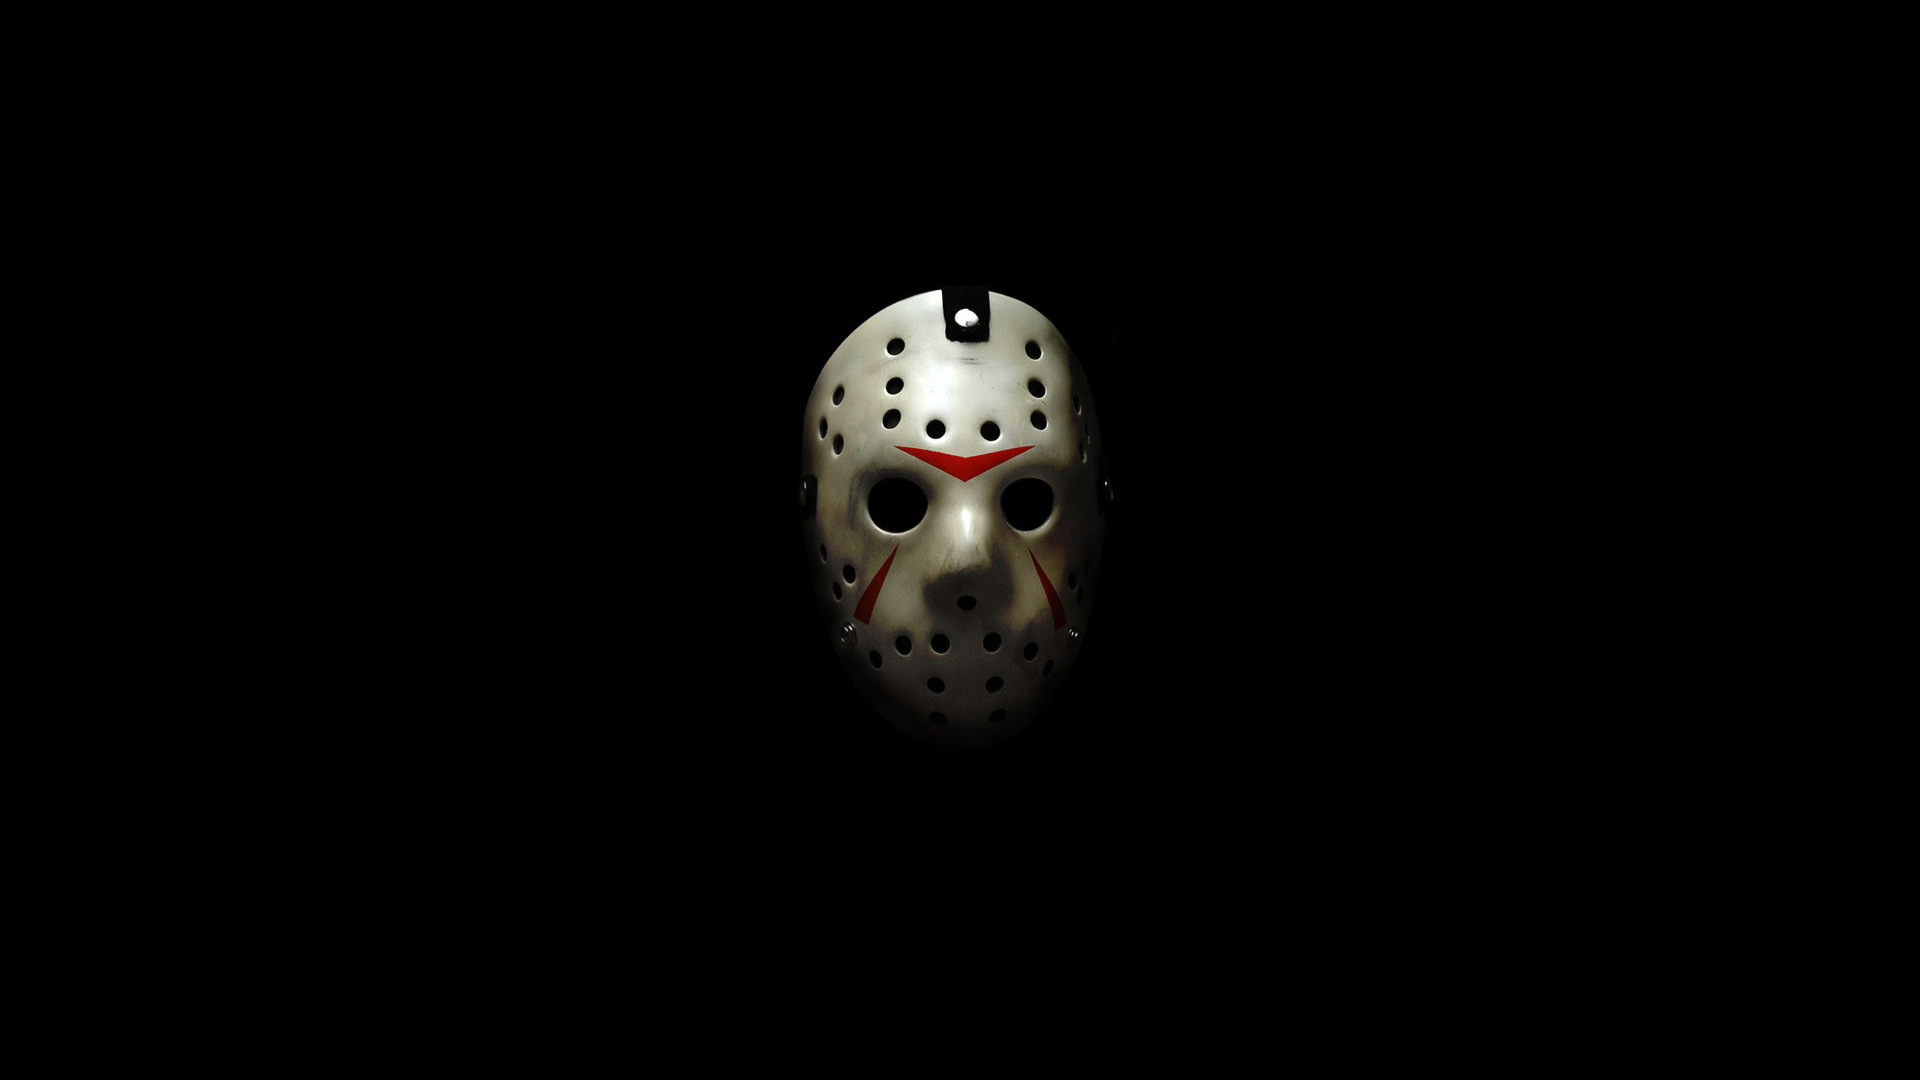 1920x1080 Friday the 13th Mask HD Wallpaper. « »